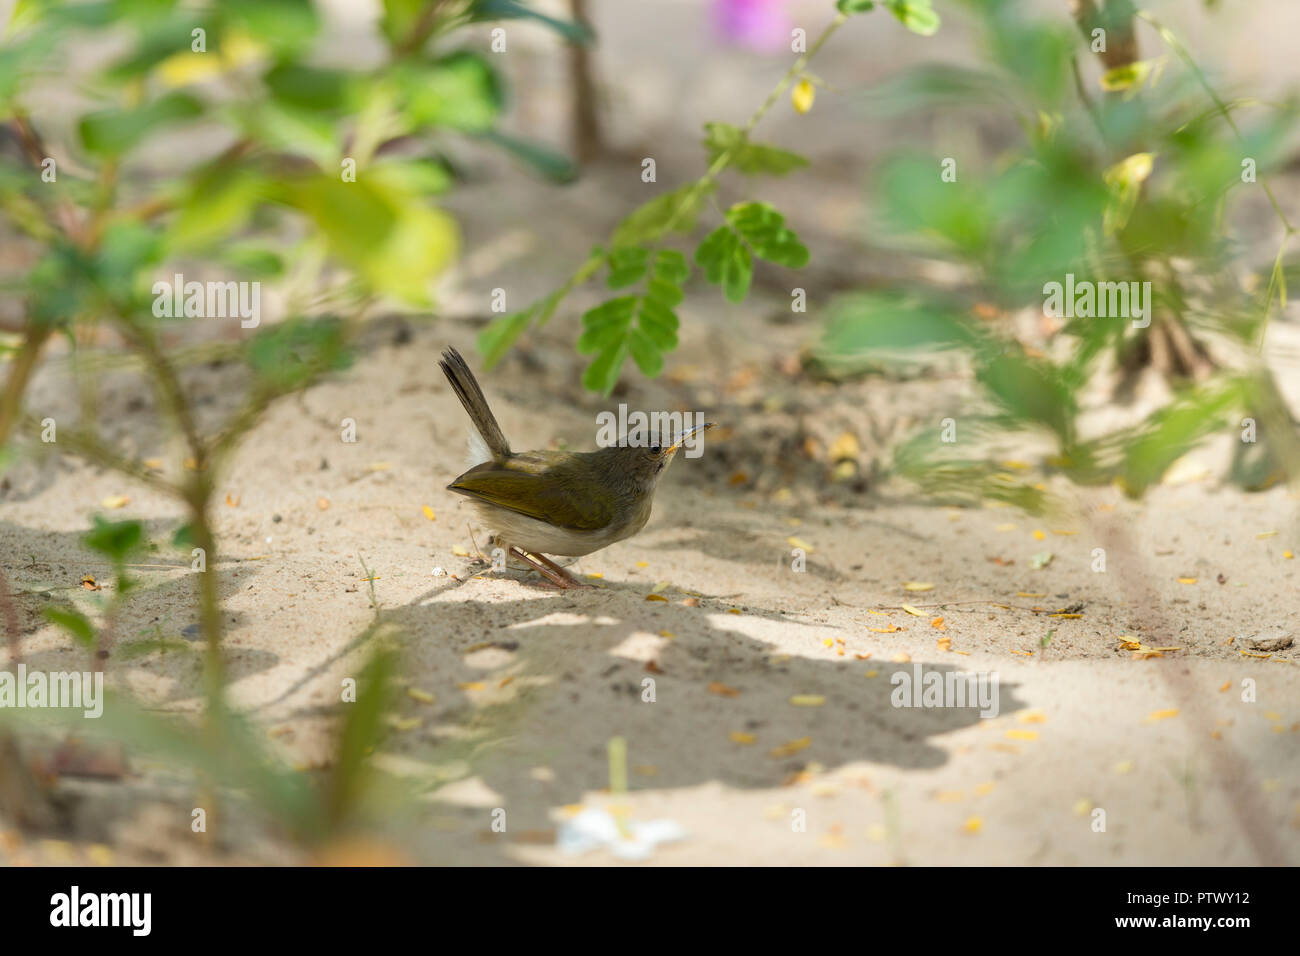 Grey-backed cameroptera Cameroptera brachyura, adult, foraging on sand soil, Kotu Bridge, Banjul, The Gambia, November - Stock Image